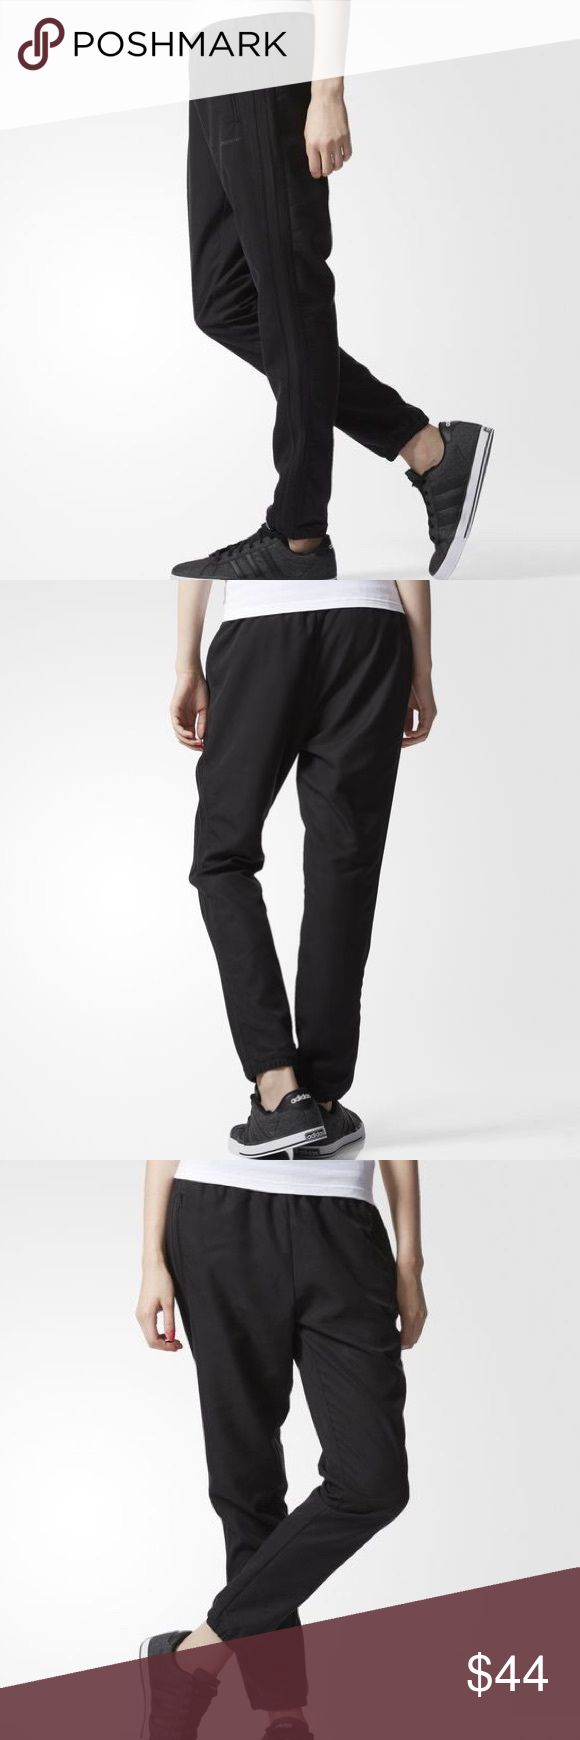 """WOMEN'S ADIDAS NEO TRACK PANTS NO TRADES - 🎈REDUCED 🎈 Simple, sophisticated comfort. These girls' track pants come with a soft build and an easy elastic waist. The clean tapered shape has a relaxed fit and handy front zip pockets. Front zip pockets Internal drawcord on elastic waist Elastic cuffs adidas neo logo below left pocket """"27.5"""""""" inseam (size Med)"""" Relaxed fit; Tapered legs 65% tencel / 35% polyester twill Adidas Pants Track Pants & Joggers"""